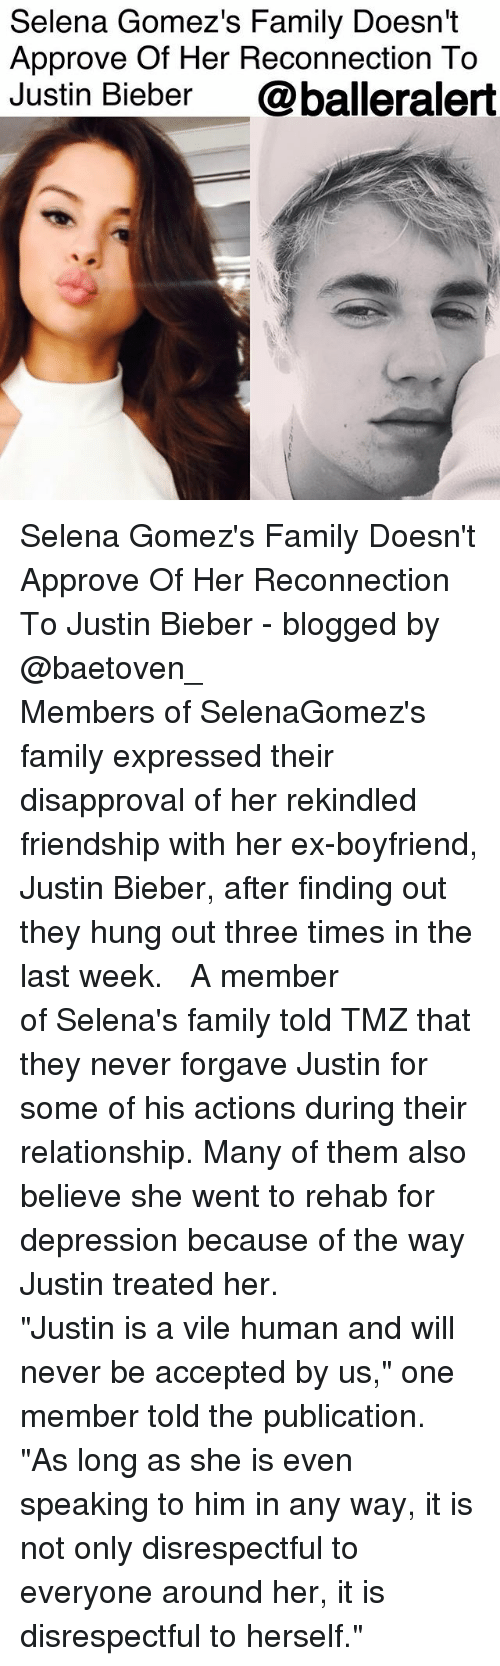 """Disapproval: Selena Gomez's Family Doesn't  Approve Of Her Reconnection To  Justin Bieber @balleralert Selena Gomez's Family Doesn't Approve Of Her Reconnection To Justin Bieber - blogged by @baetoven_ ⠀⠀⠀⠀⠀⠀⠀ ⠀⠀⠀⠀⠀⠀⠀ Members of SelenaGomez's family expressed their disapproval of her rekindled friendship with her ex-boyfriend, Justin Bieber, after finding out they hung out three times in the last week. ⠀⠀⠀⠀⠀⠀⠀ ⠀⠀⠀⠀⠀⠀⠀ A member of Selena's family told TMZ that they never forgave Justin for some of his actions during their relationship. Many of them also believe she went to rehab for depression because of the way Justin treated her. ⠀⠀⠀⠀⠀⠀⠀ ⠀⠀⠀⠀⠀⠀⠀ """"Justin is a vile human and will never be accepted by us,"""" one member told the publication. """"As long as she is even speaking to him in any way, it is not only disrespectful to everyone around her, it is disrespectful to herself."""" ⠀⠀⠀⠀⠀⠀⠀"""